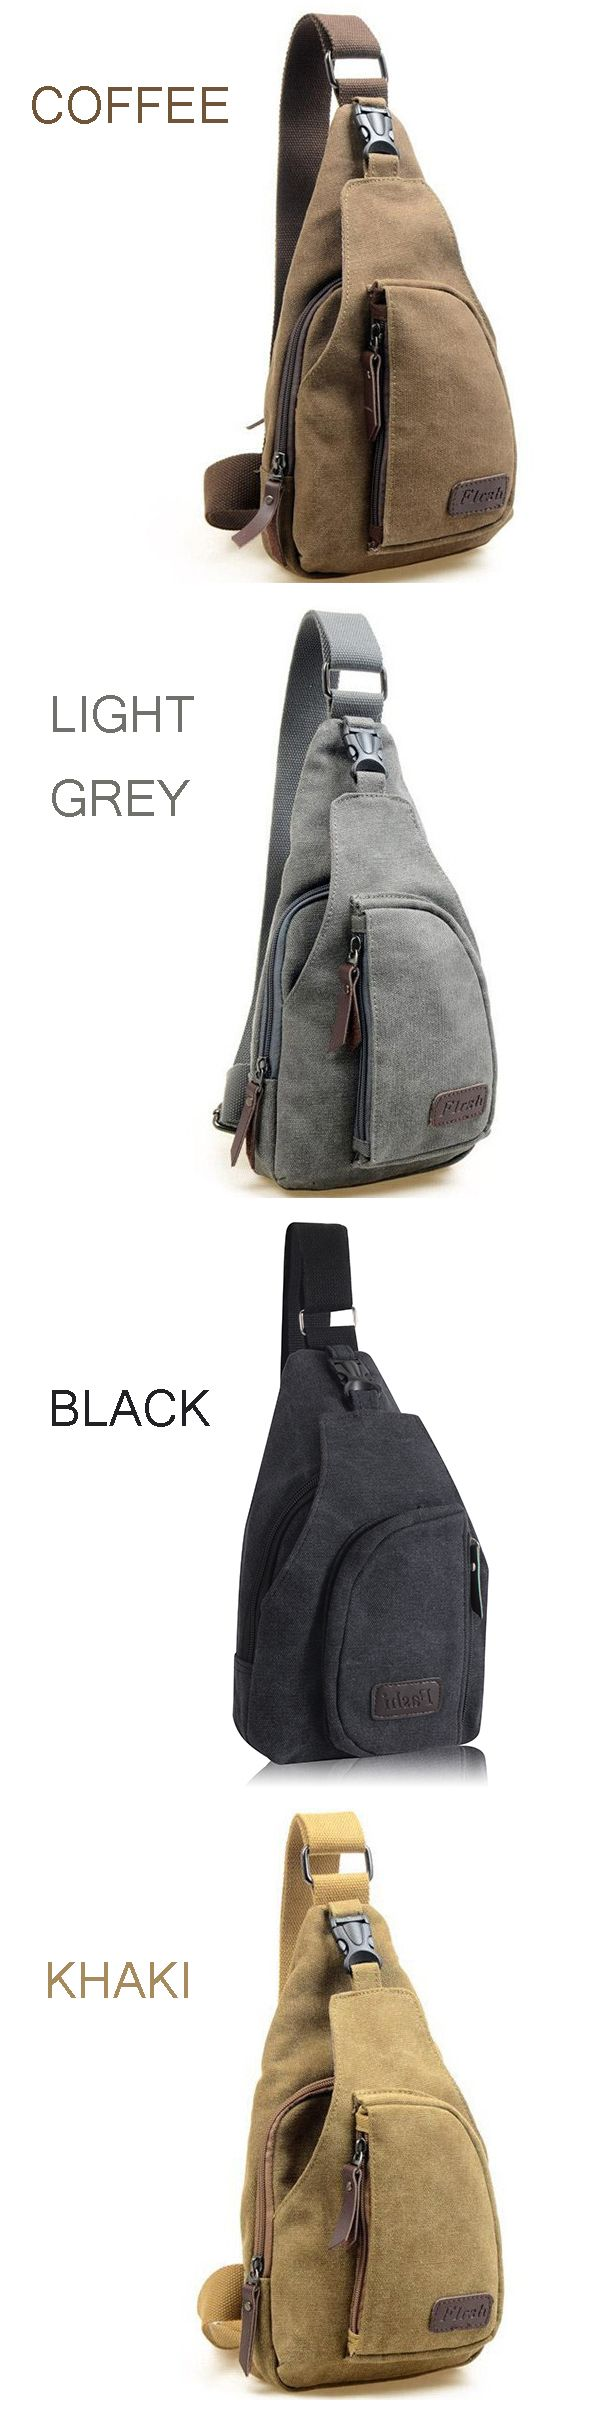 US$ 9.99~11.99+ Free shipping. Men Bag, Men Backpack, Canvas Bag, Canvas Backpack,Shoulder Bag, Chest Bag, Hiking Bag. Color: Khaki, Light Grey, Coffee, Army Green Material: Canvas. Excelent Material with High Quality yet Low Price.